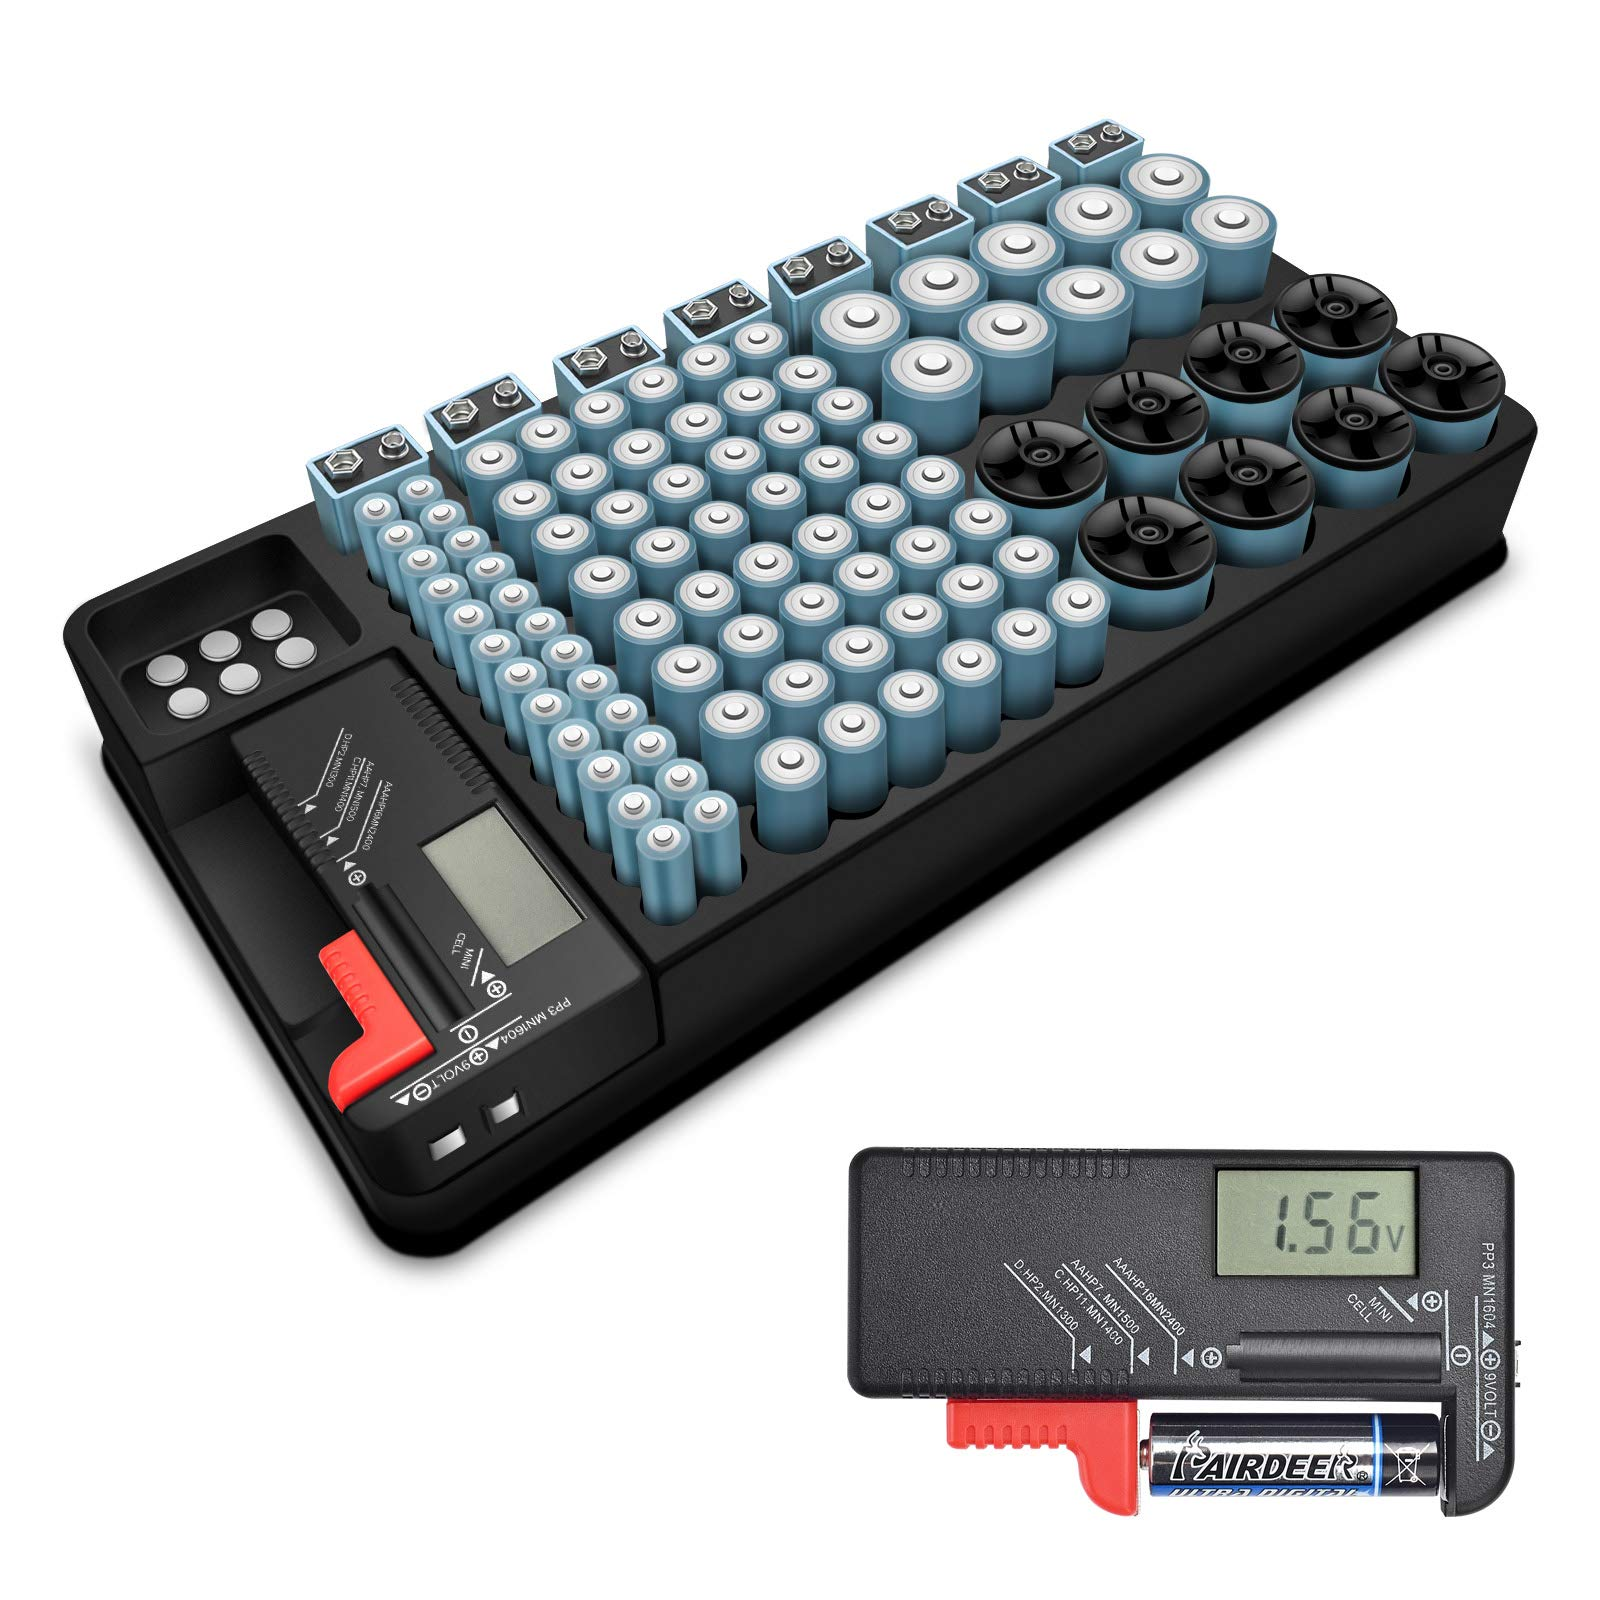 Battery Storage Organizer Case with Removable Battery Tester,Holds 110 Batteries Various Sizes Support AAA,AA,9V,C and D Size and Great for The Kitchen,Work Space,Office